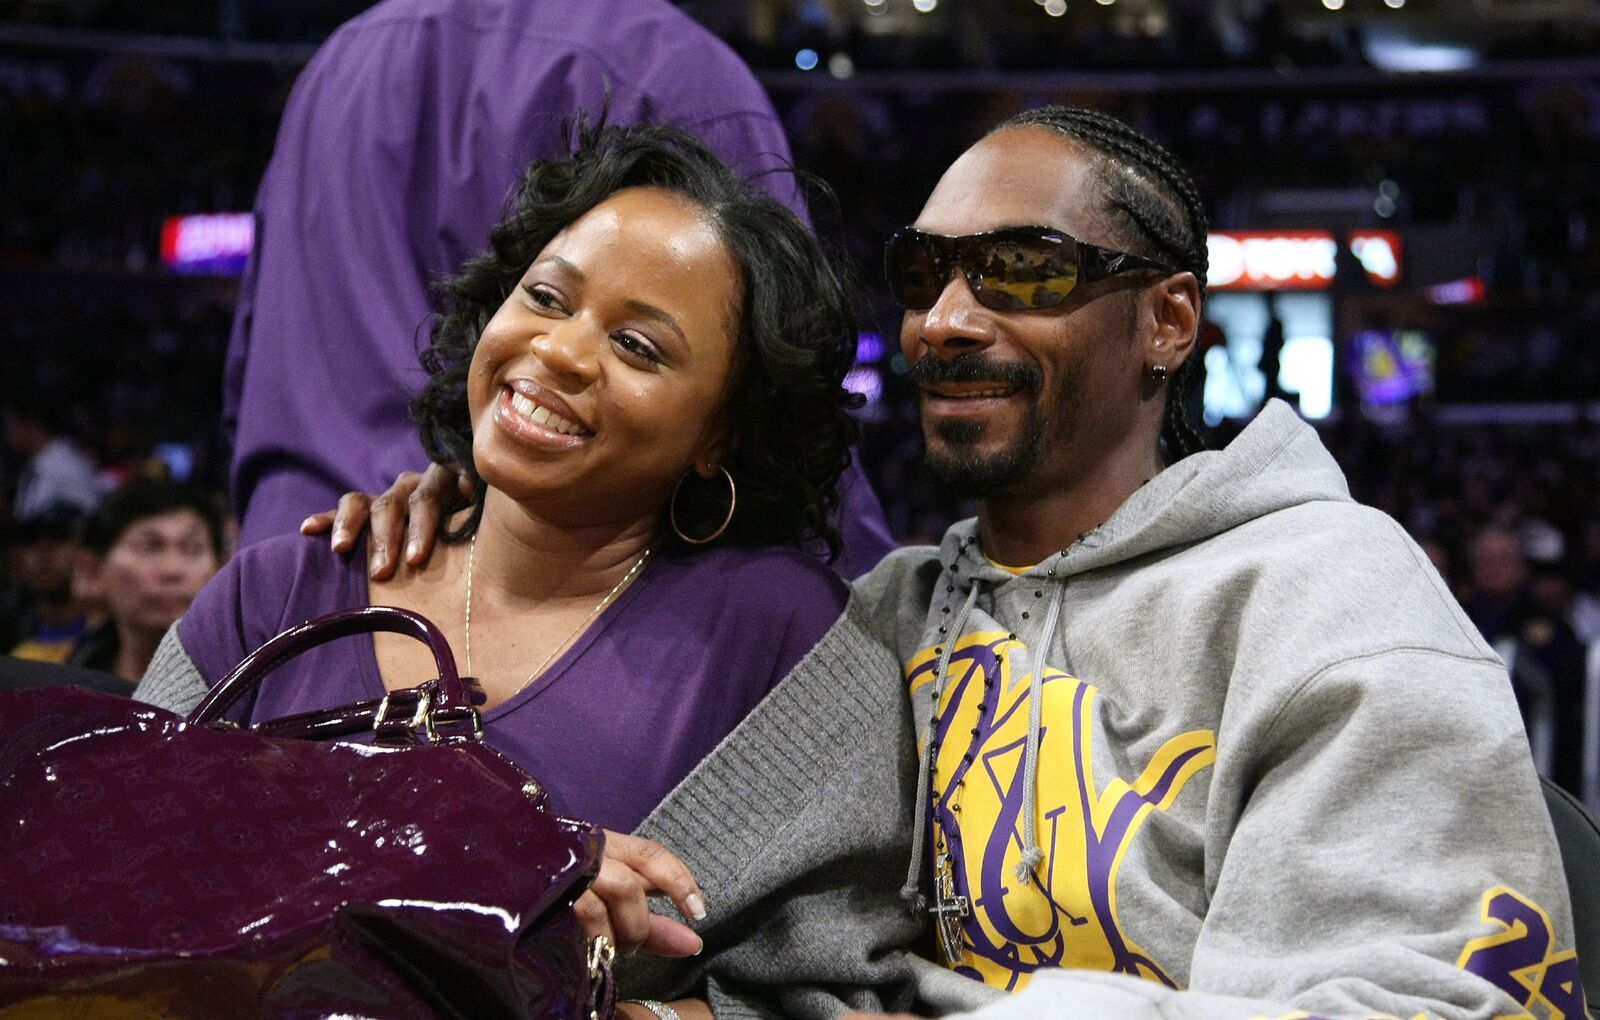 Rapper Snoop Dogg (R) and his wife Shante Broadus (L) attend the Los Angeles Lakers vs Boston Celtics game at the Staples Center. | Photo: Getty Images